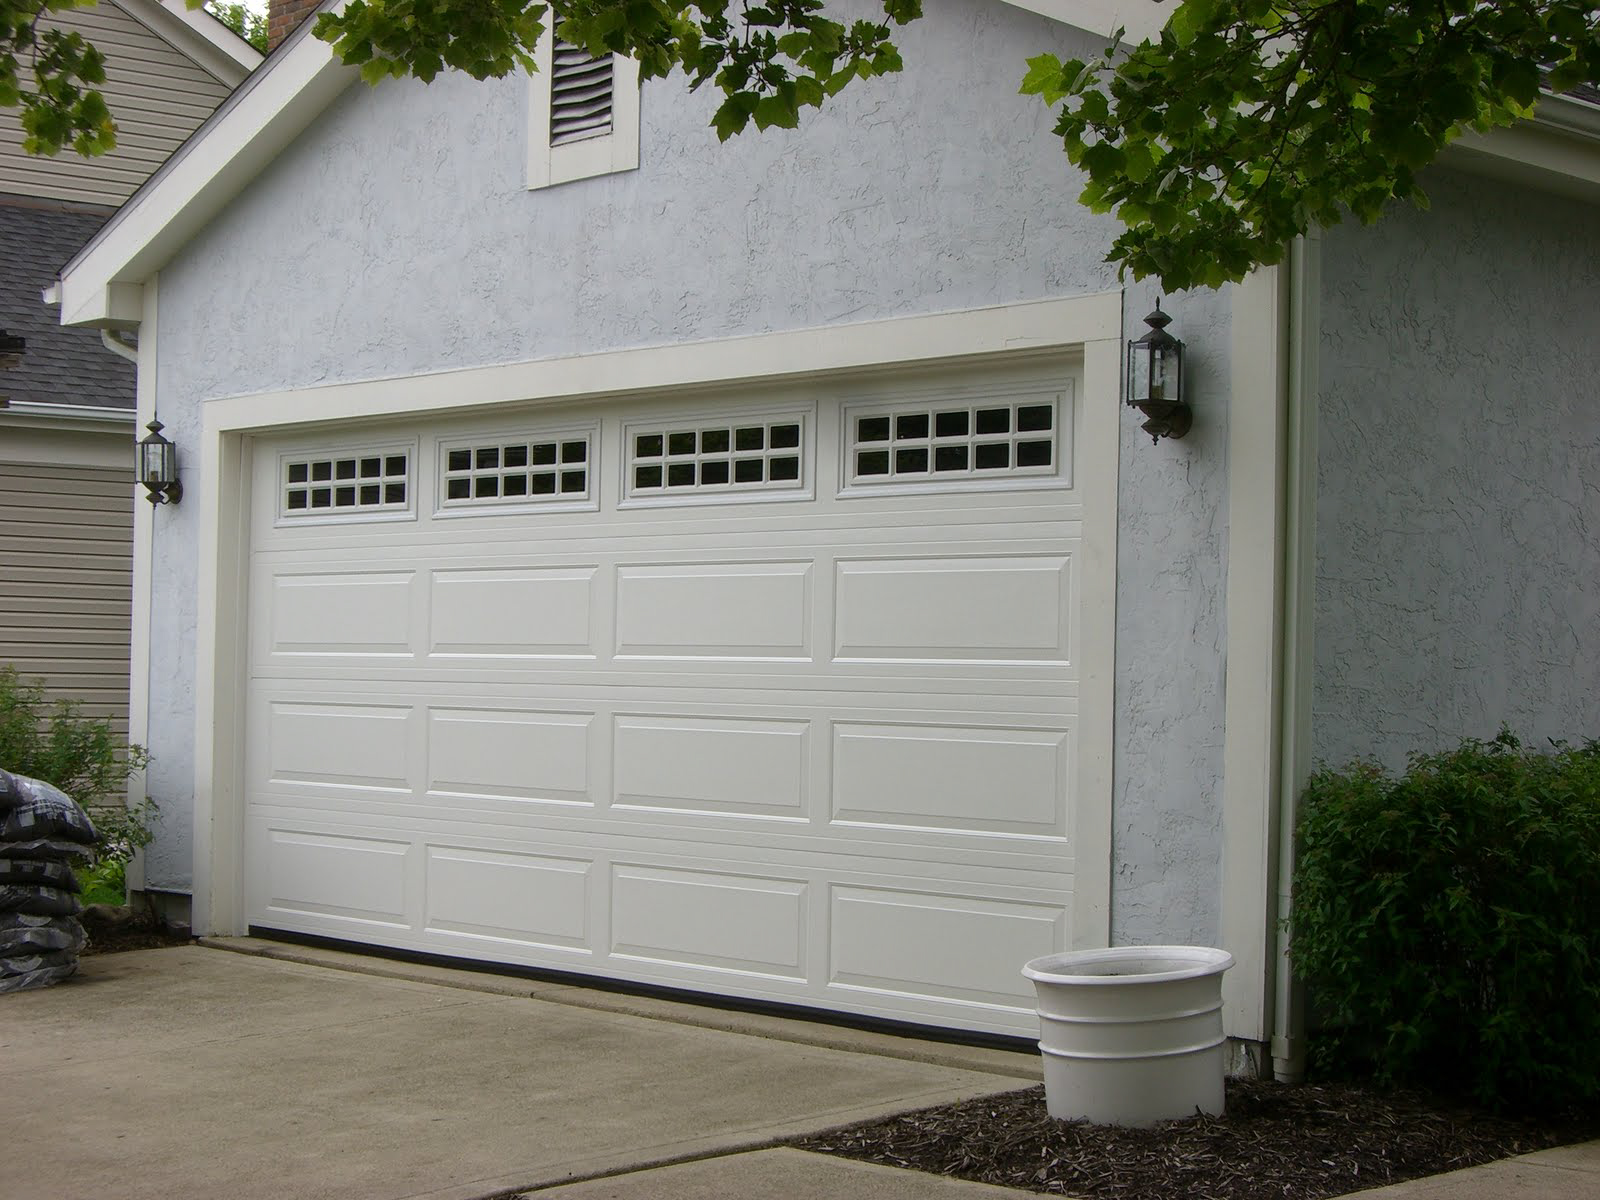 Ranch panel garage doors st cloud mn american door works for Ranch house garage doors